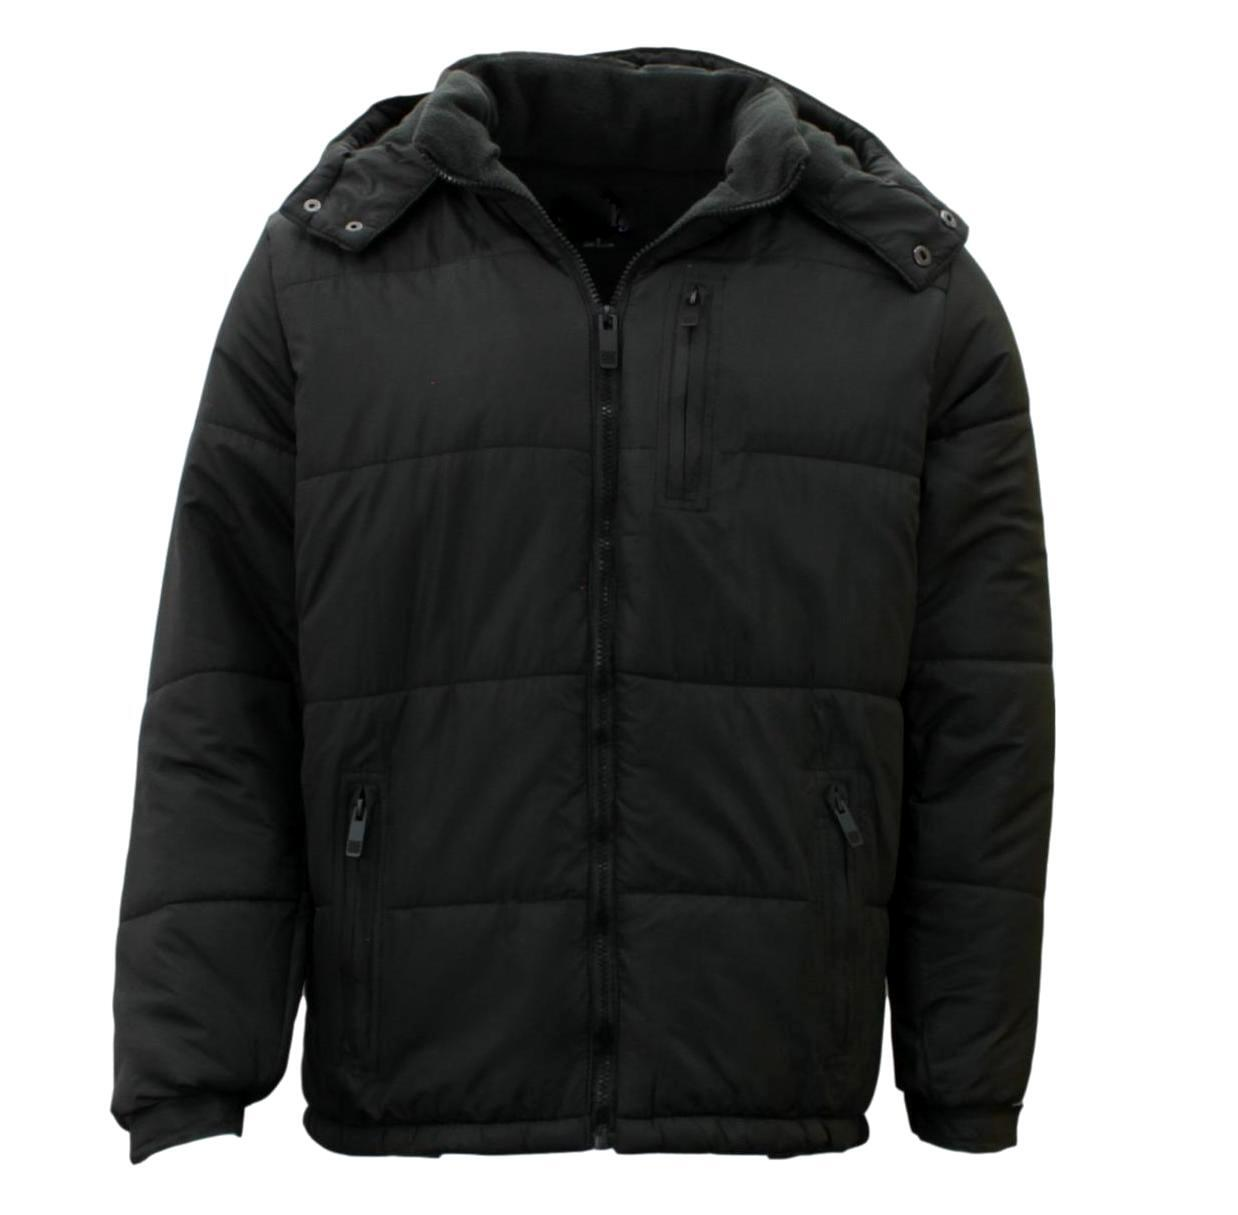 Stitch-Dodge-Mens-Parka-Puffer-Jacket-Quilted-Detachable-Hoodie-Puffy-Padded thumbnail 6